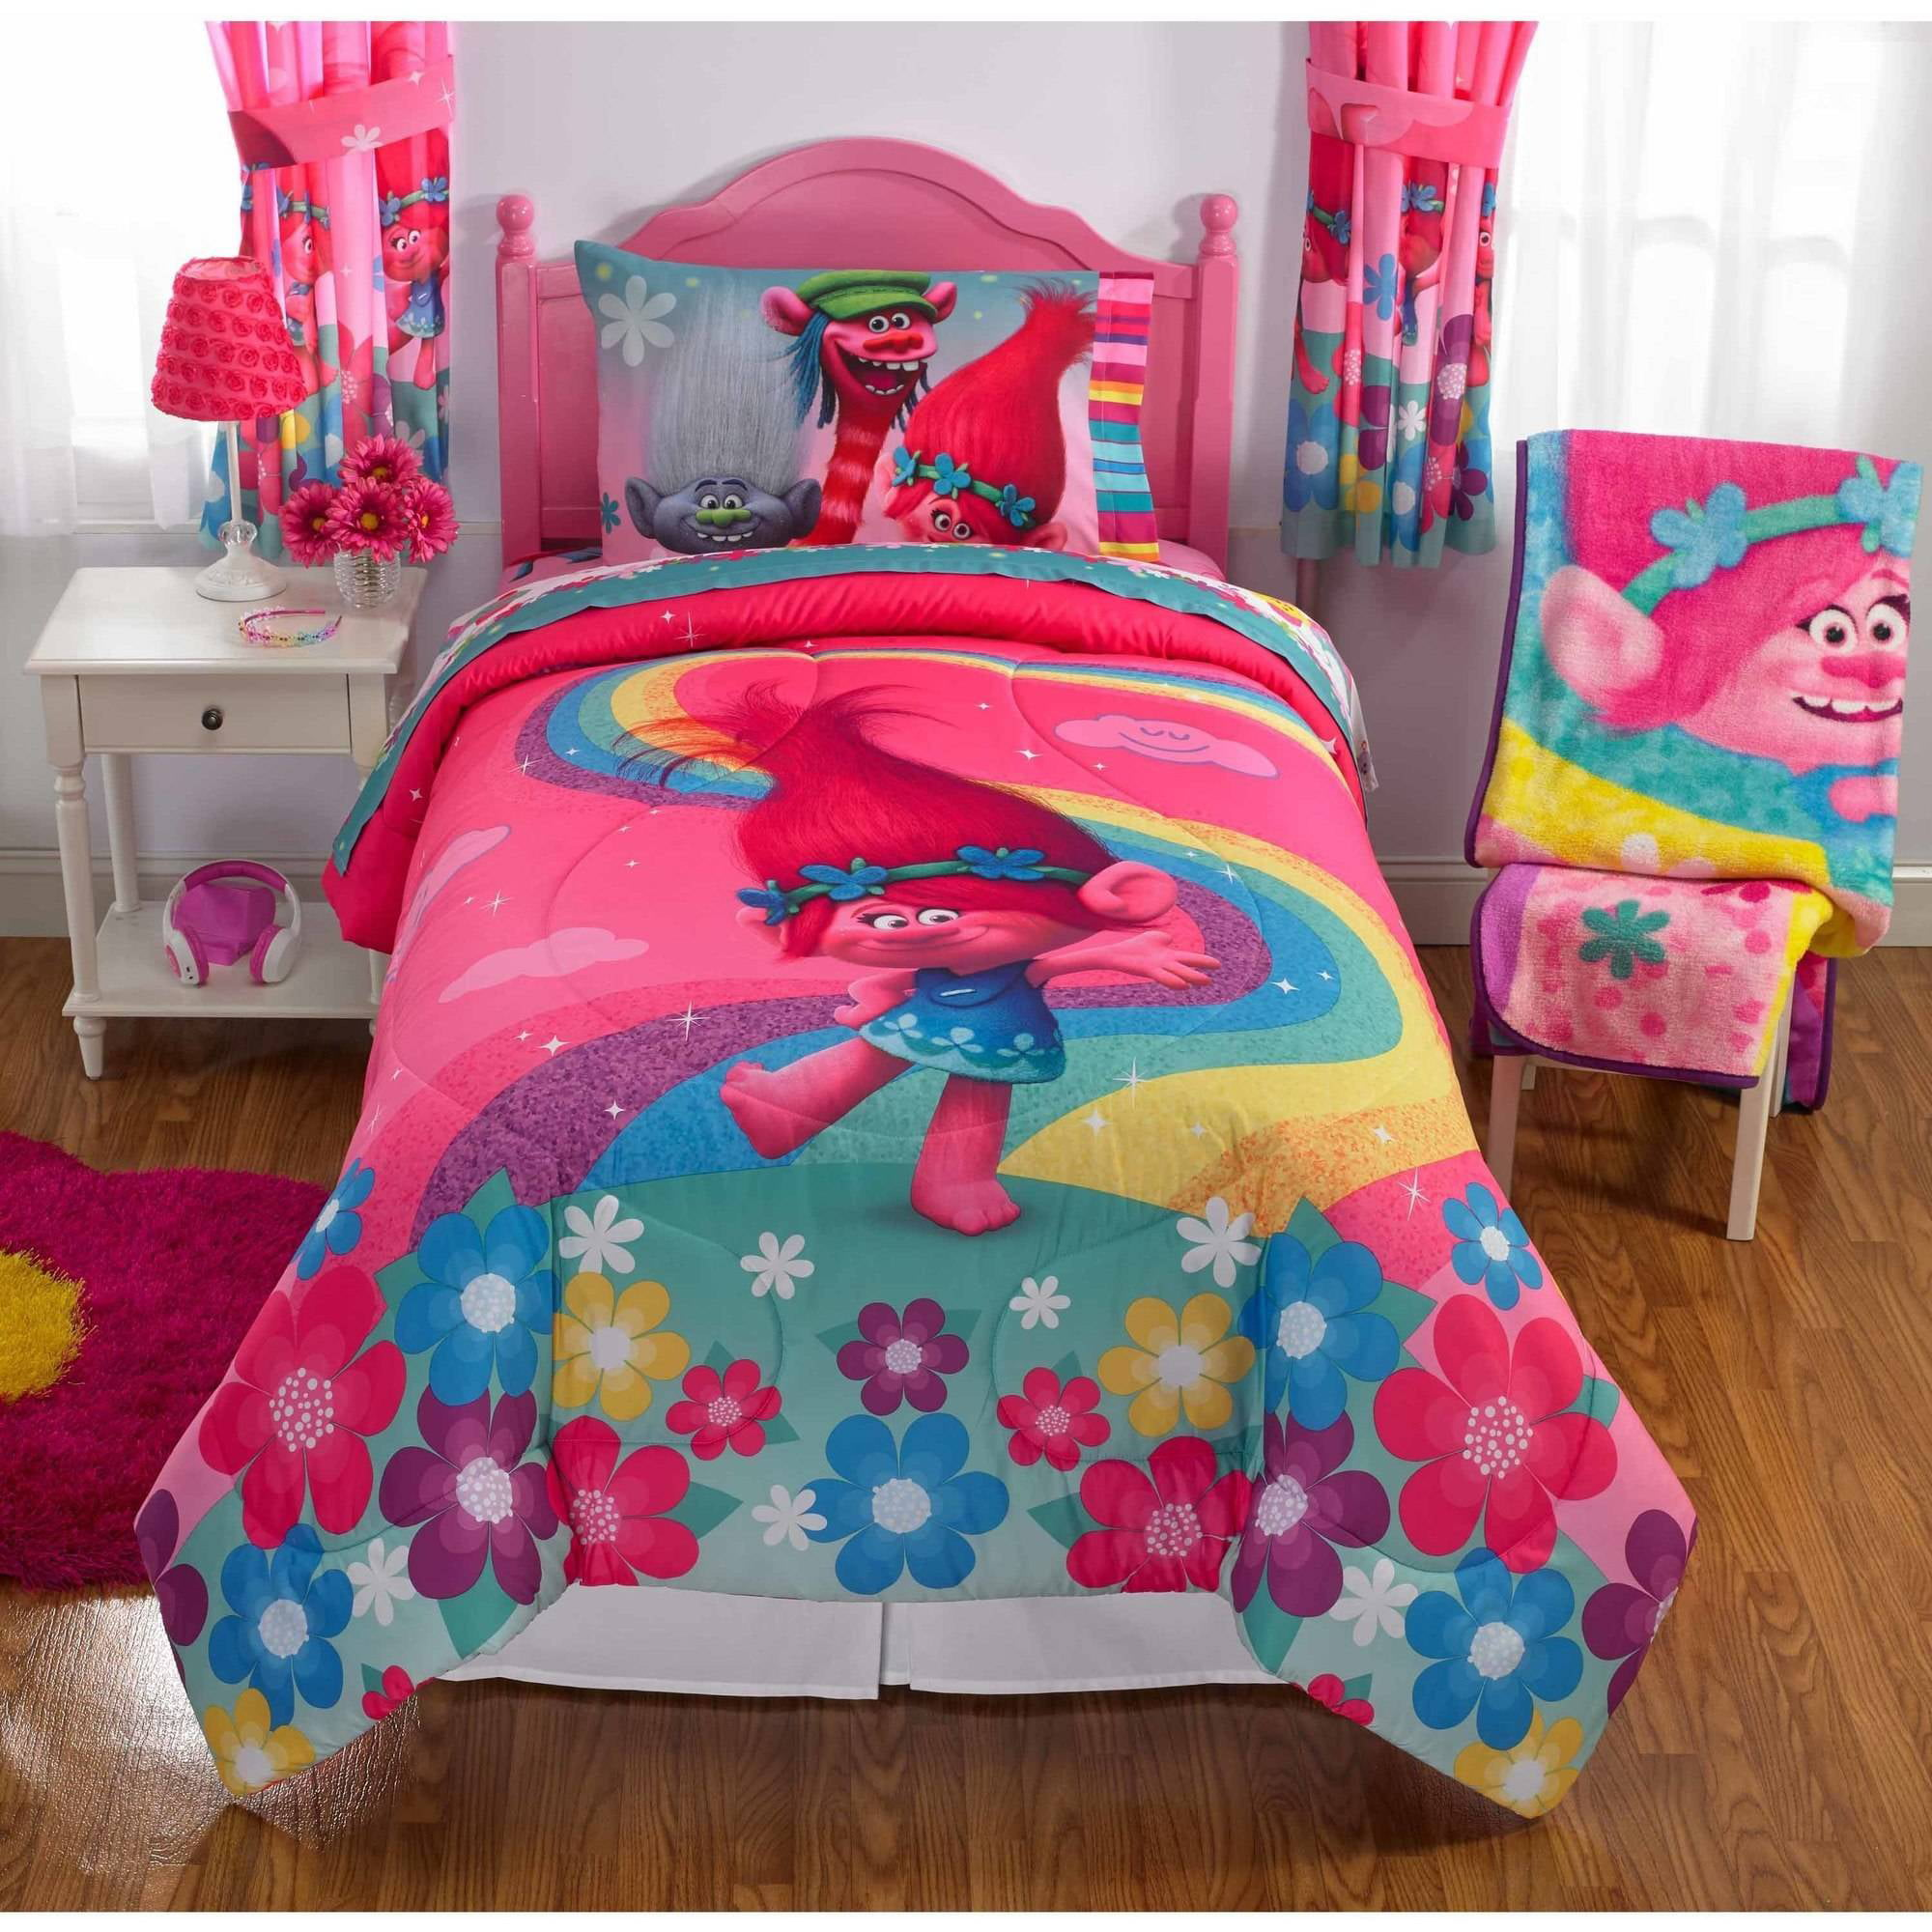 "Trolls ""Show Me A Smile"" Kid's Bedding Bed in Bag Bedding Set by Franco"